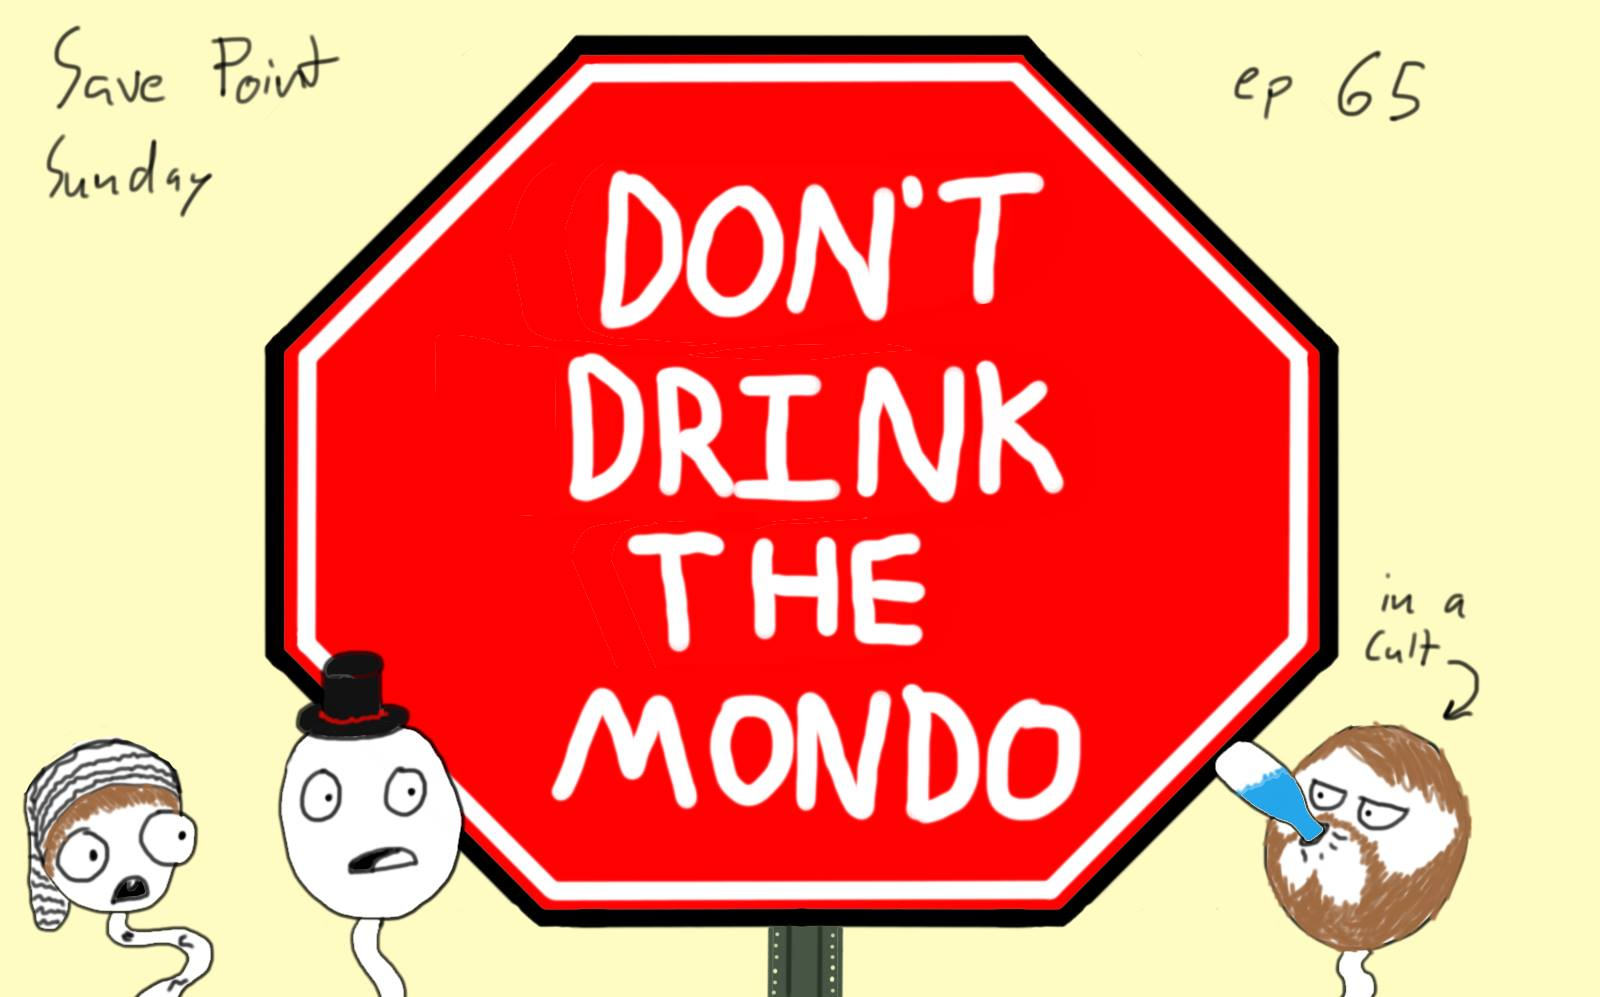 Episode 65: Don't Drink The Mondo